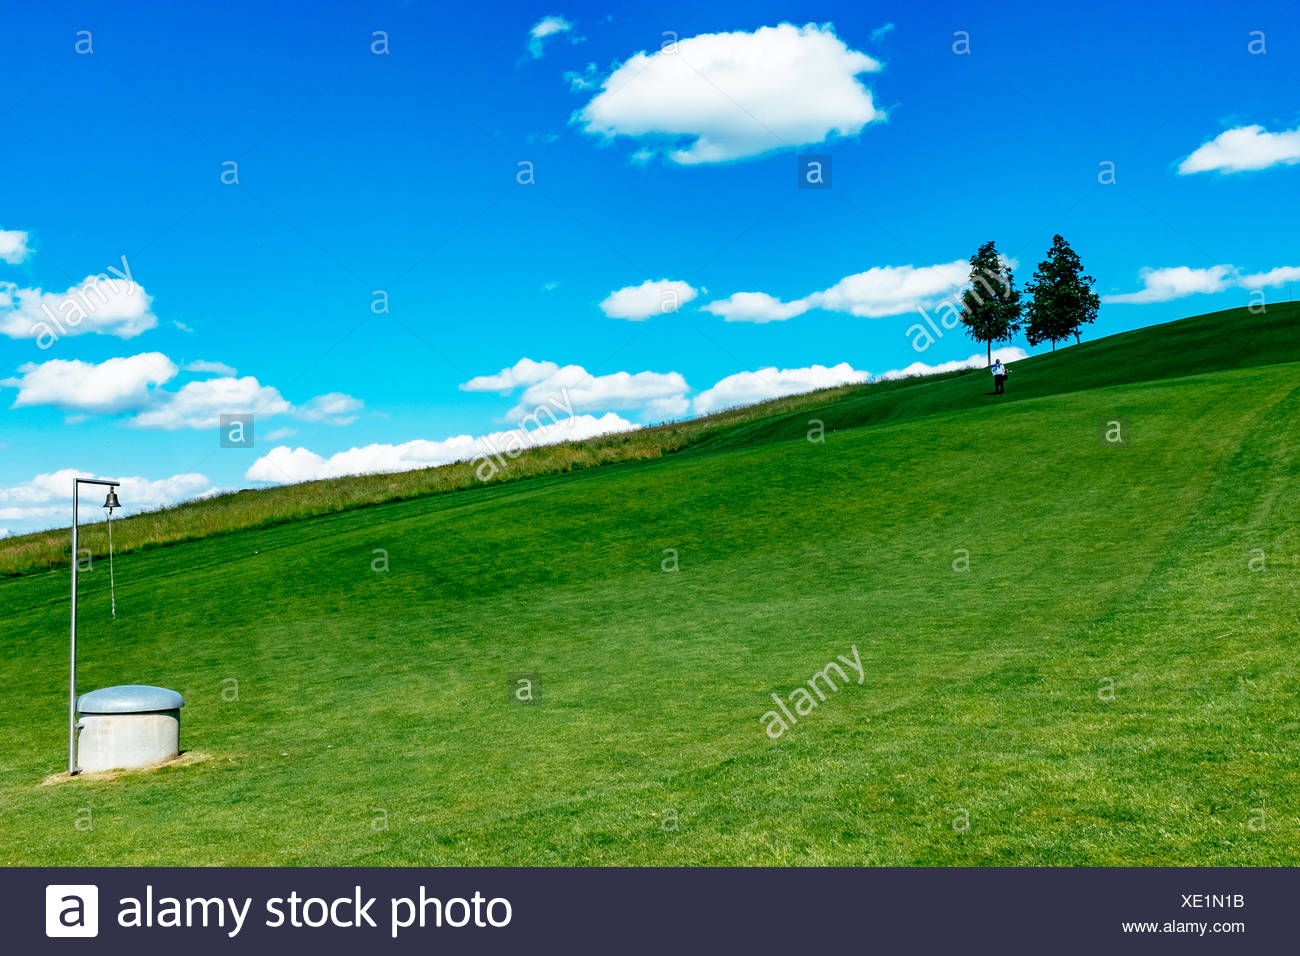 Scenic View Of Green Hill Against Cloudy Blue Sky - Stock Image